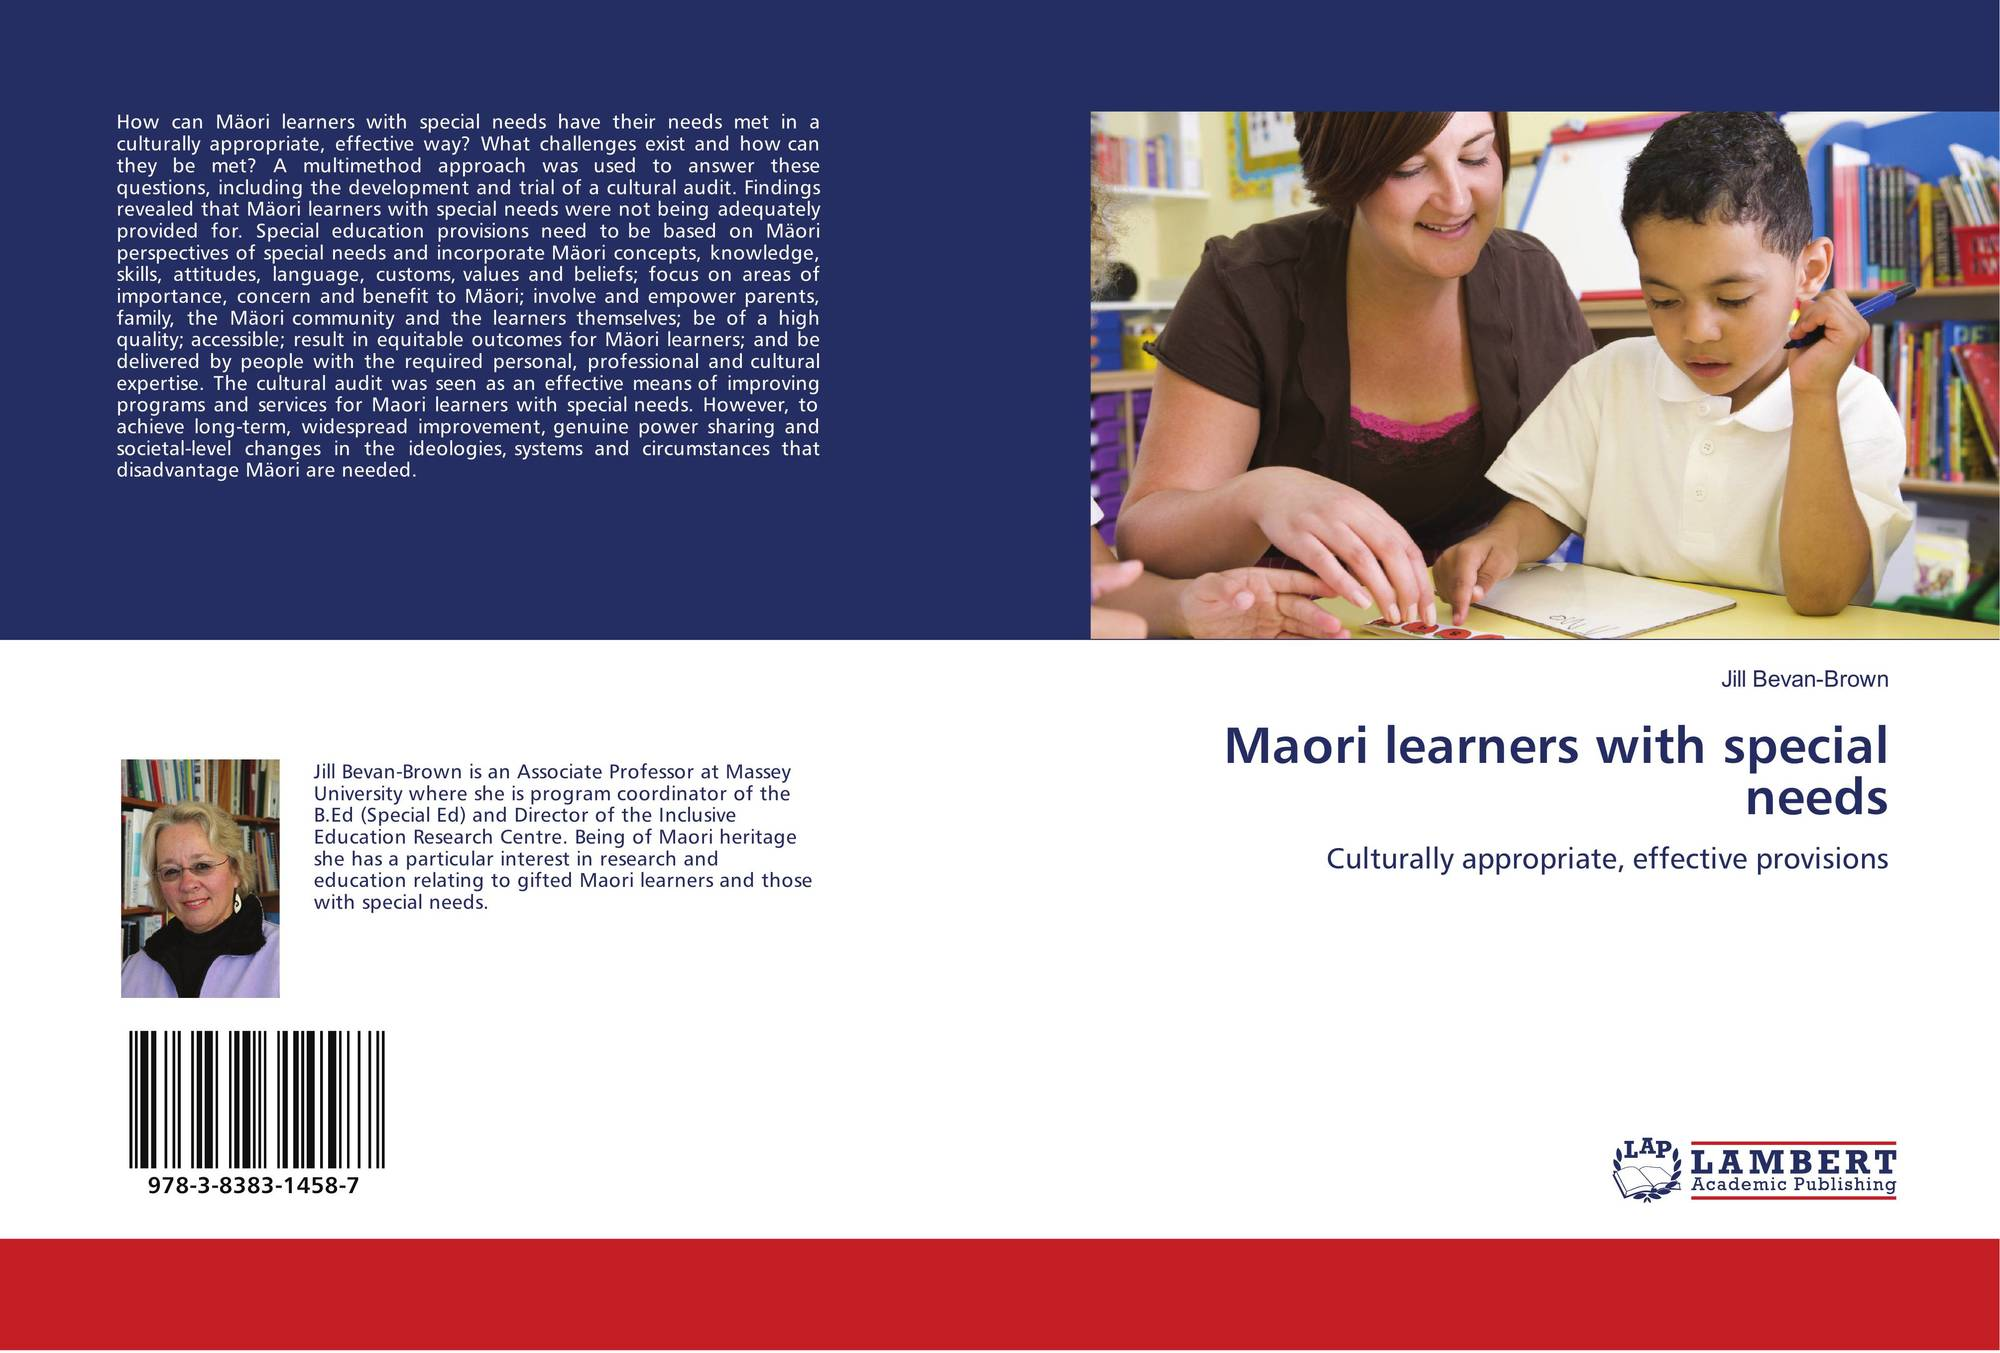 culture and special education Standards as the recognized leader for special education professional standards, cec develops standards, ethics and practices and guidelines to ensure that individuals with exceptionalities have access to well-prepared, career-oriented special educators.